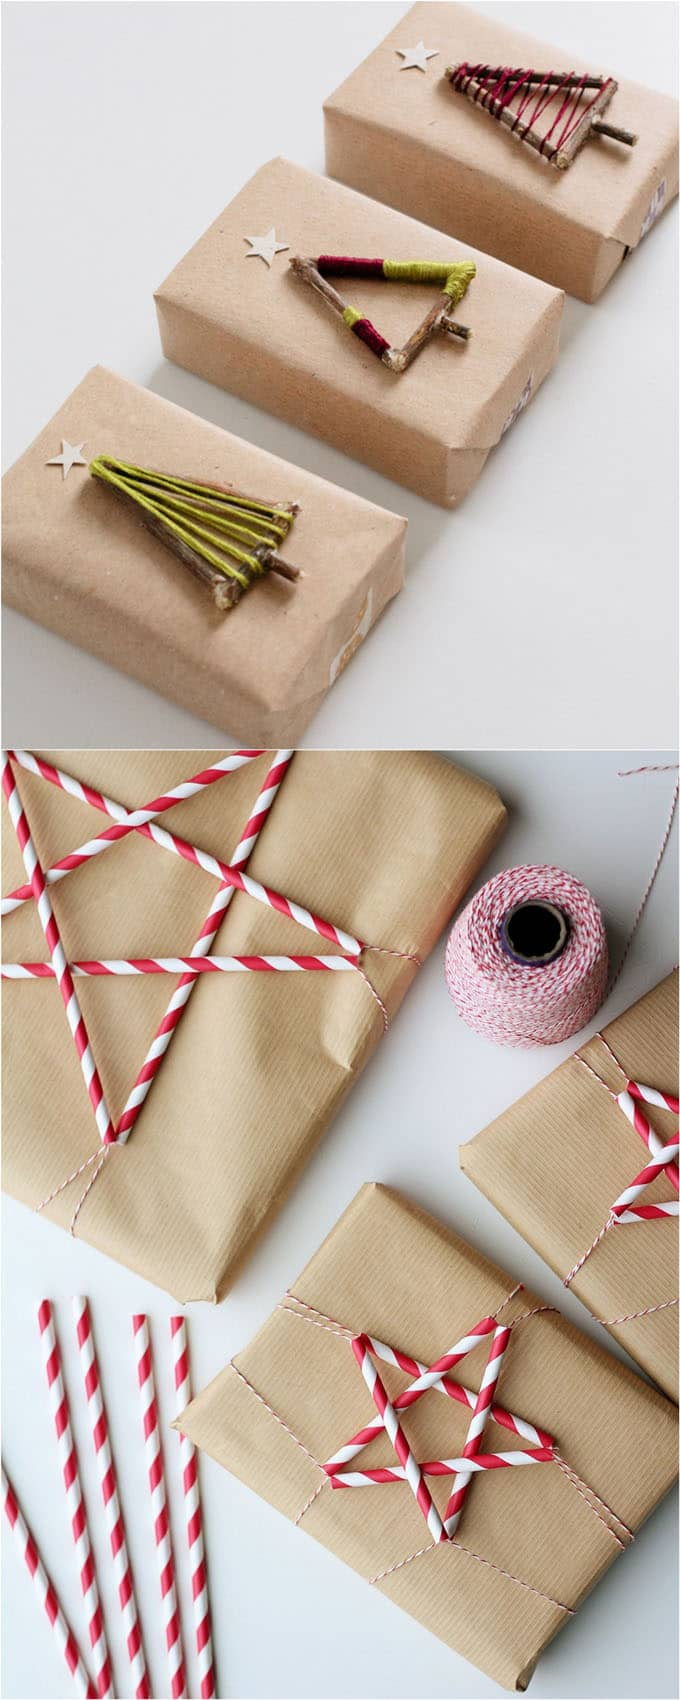 16 gift wrapping hacks apieceofrainbow 3 - 16 Favorite Easy Gift Wrapping Ideas (Many are Free!)